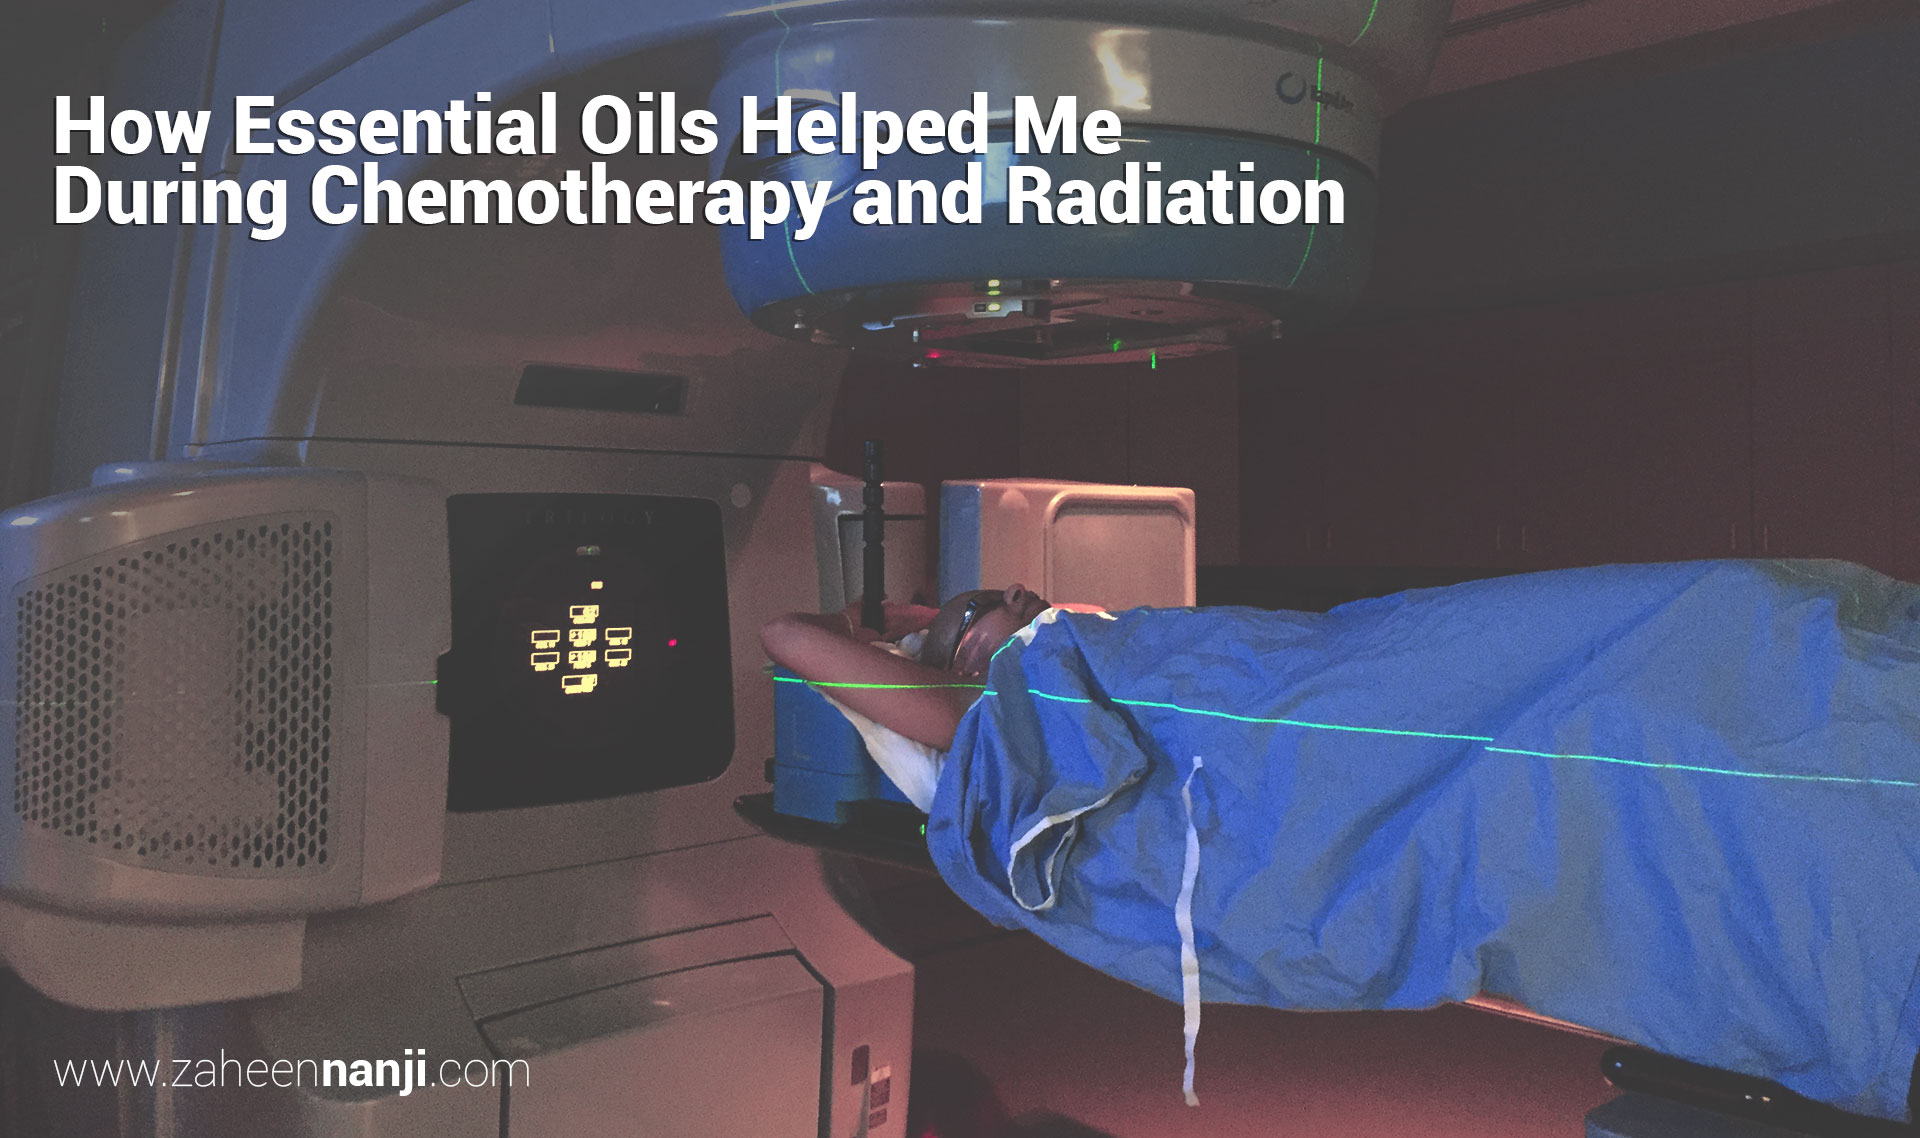 How Essential Oils Helped Me During Chemotherapy and